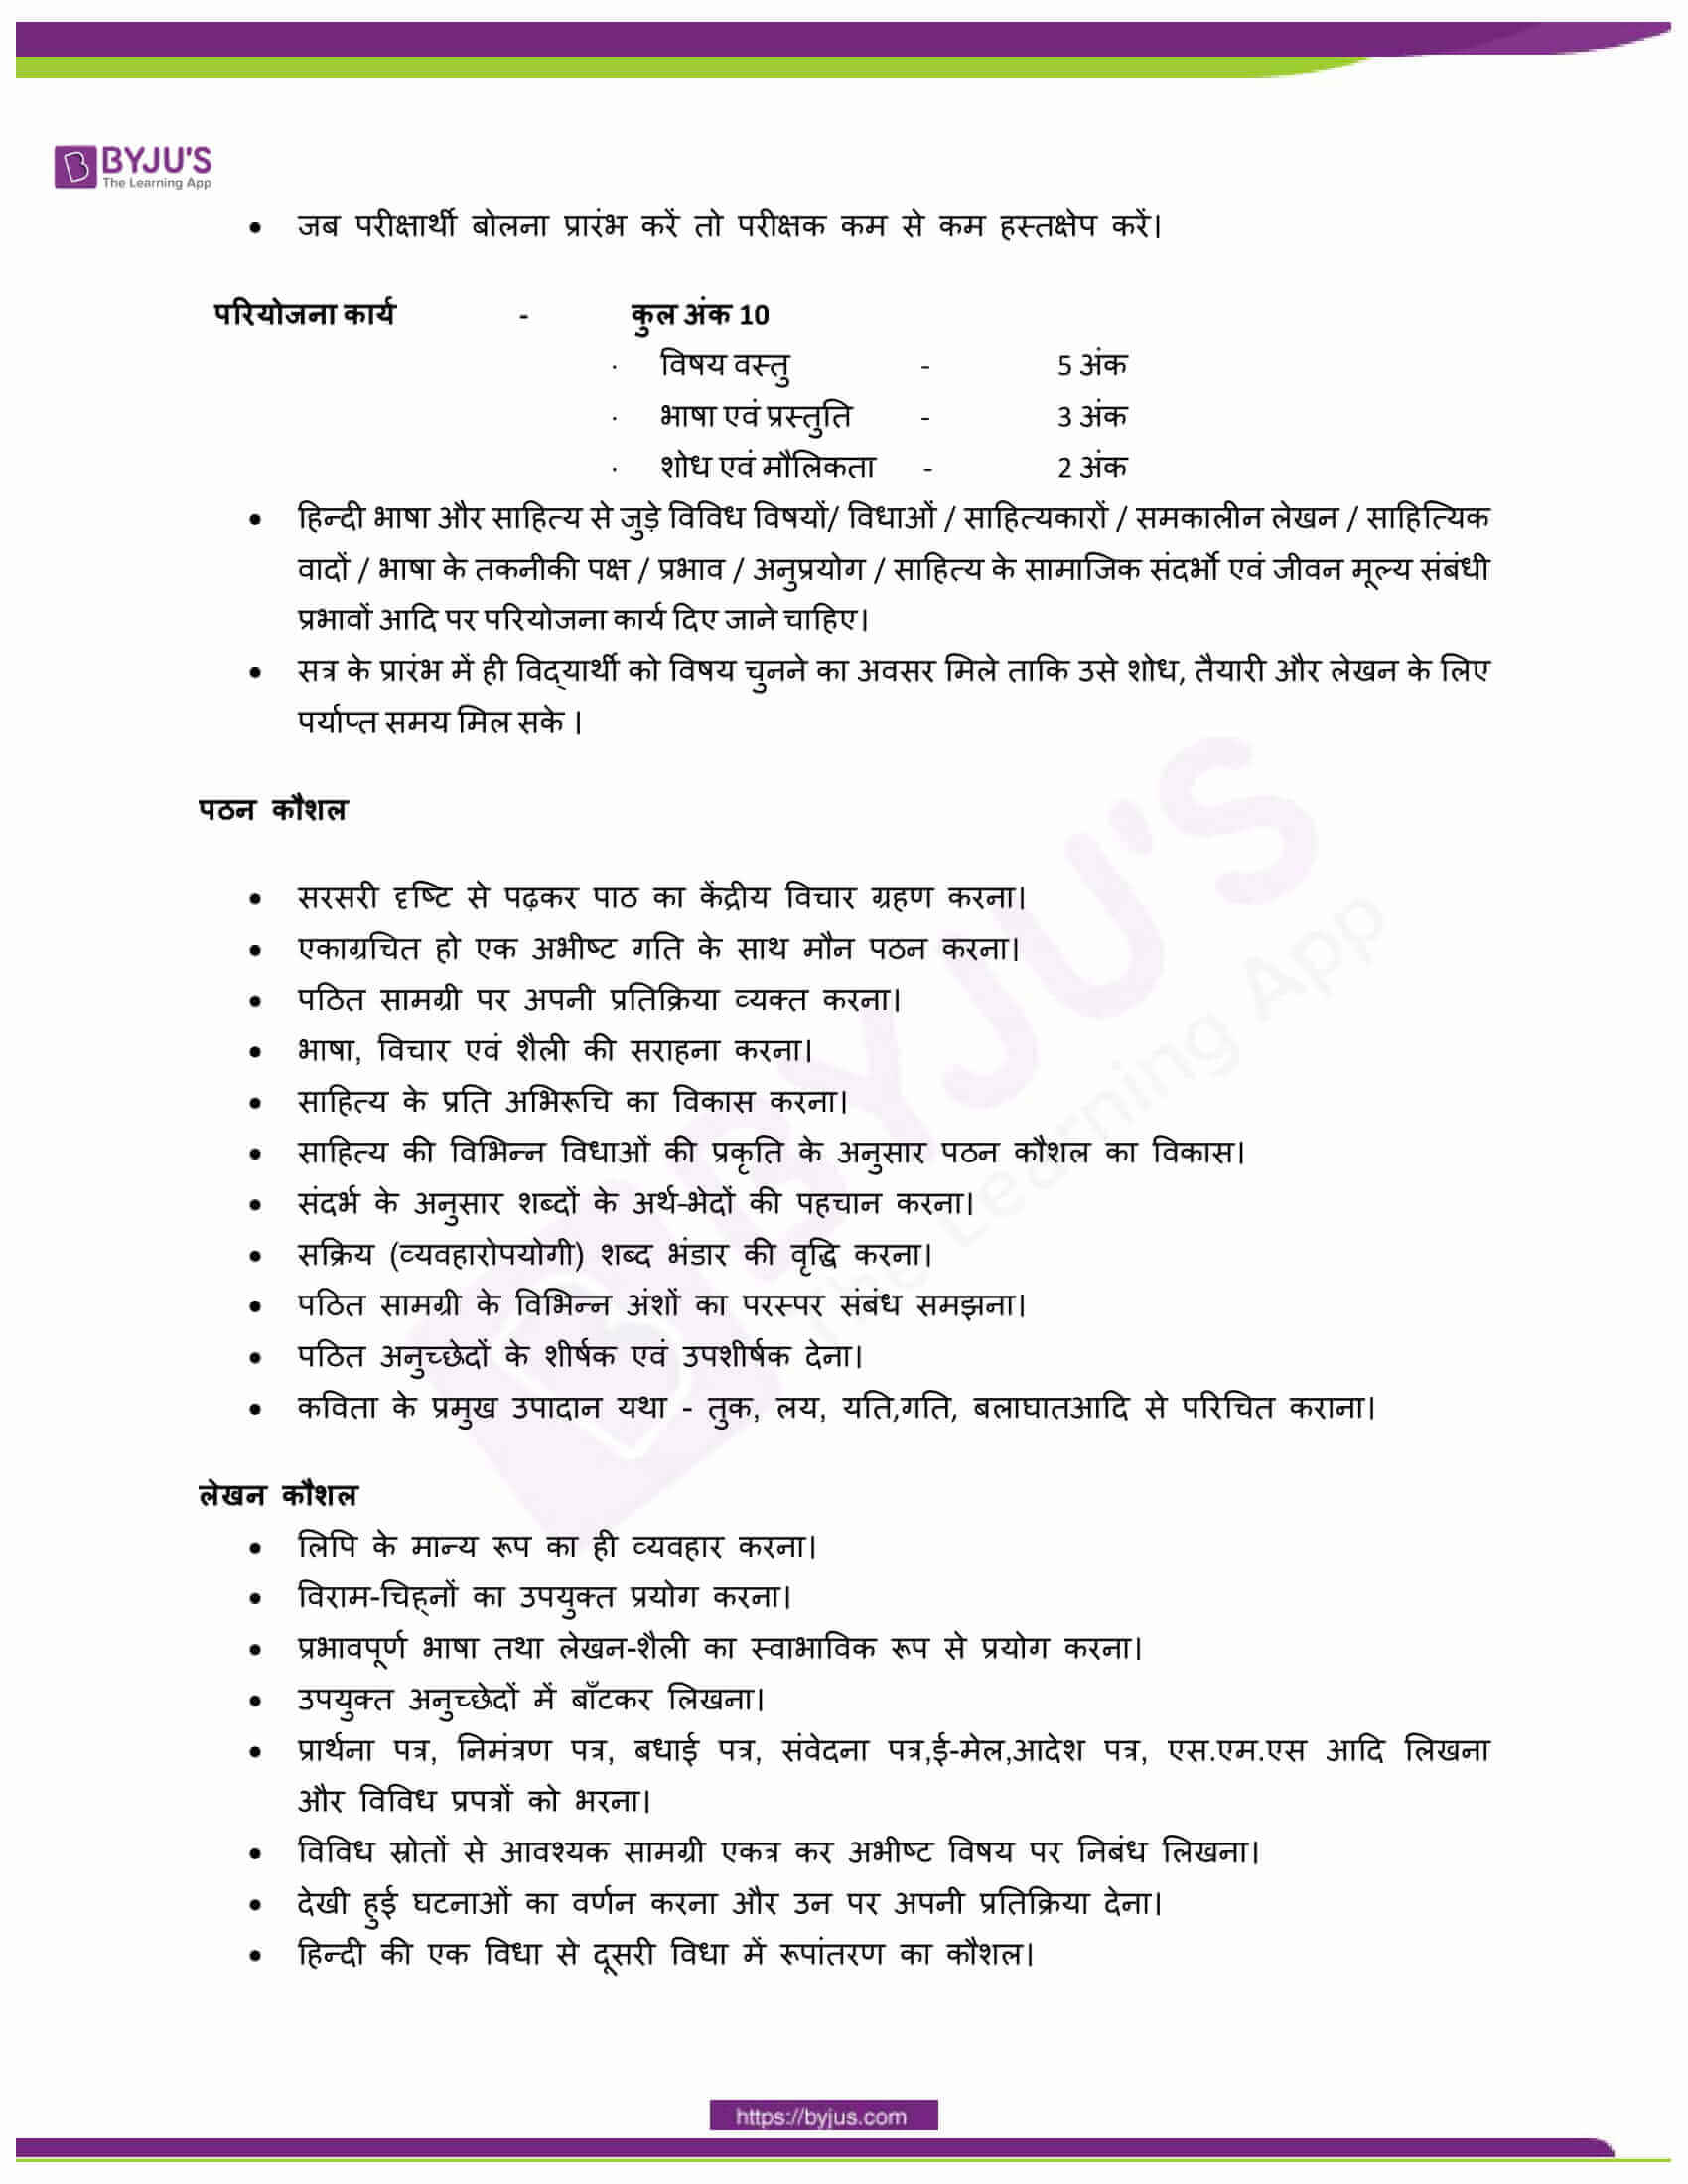 CBSE Class 10 Hindi Course A Revised Syllabus 2020 21 05